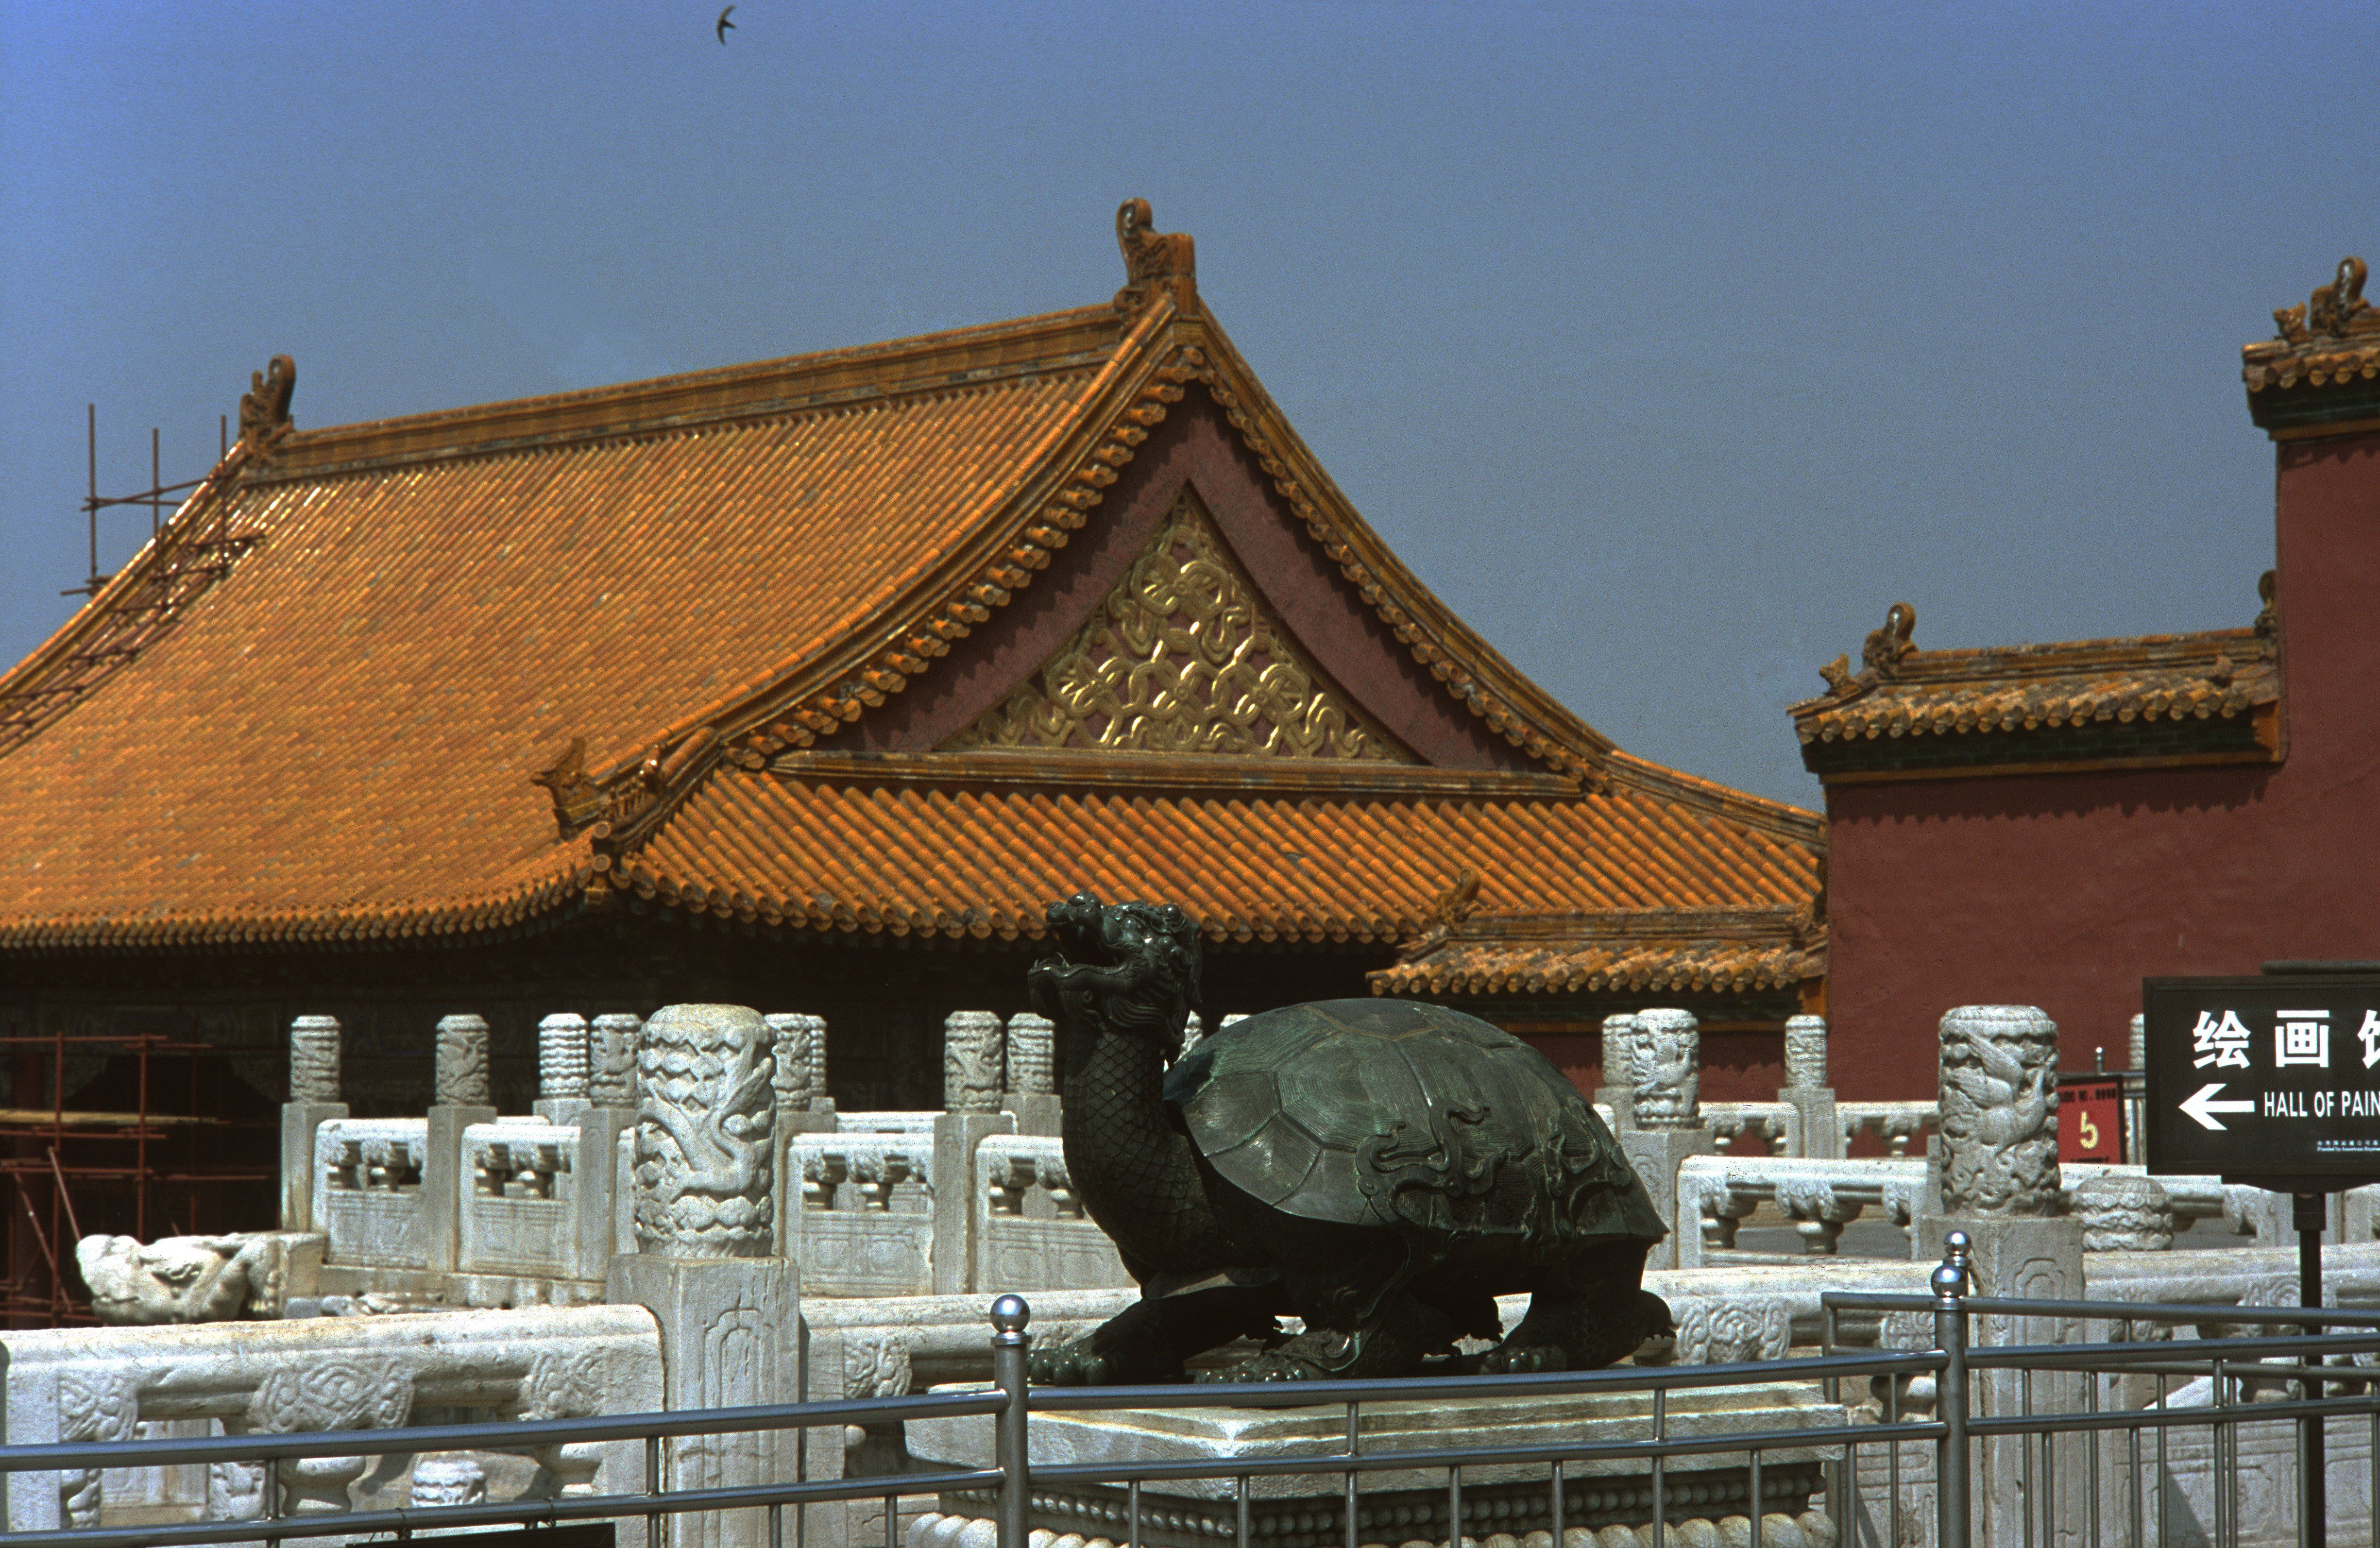 Forbidden City Architecture in Beijing, China